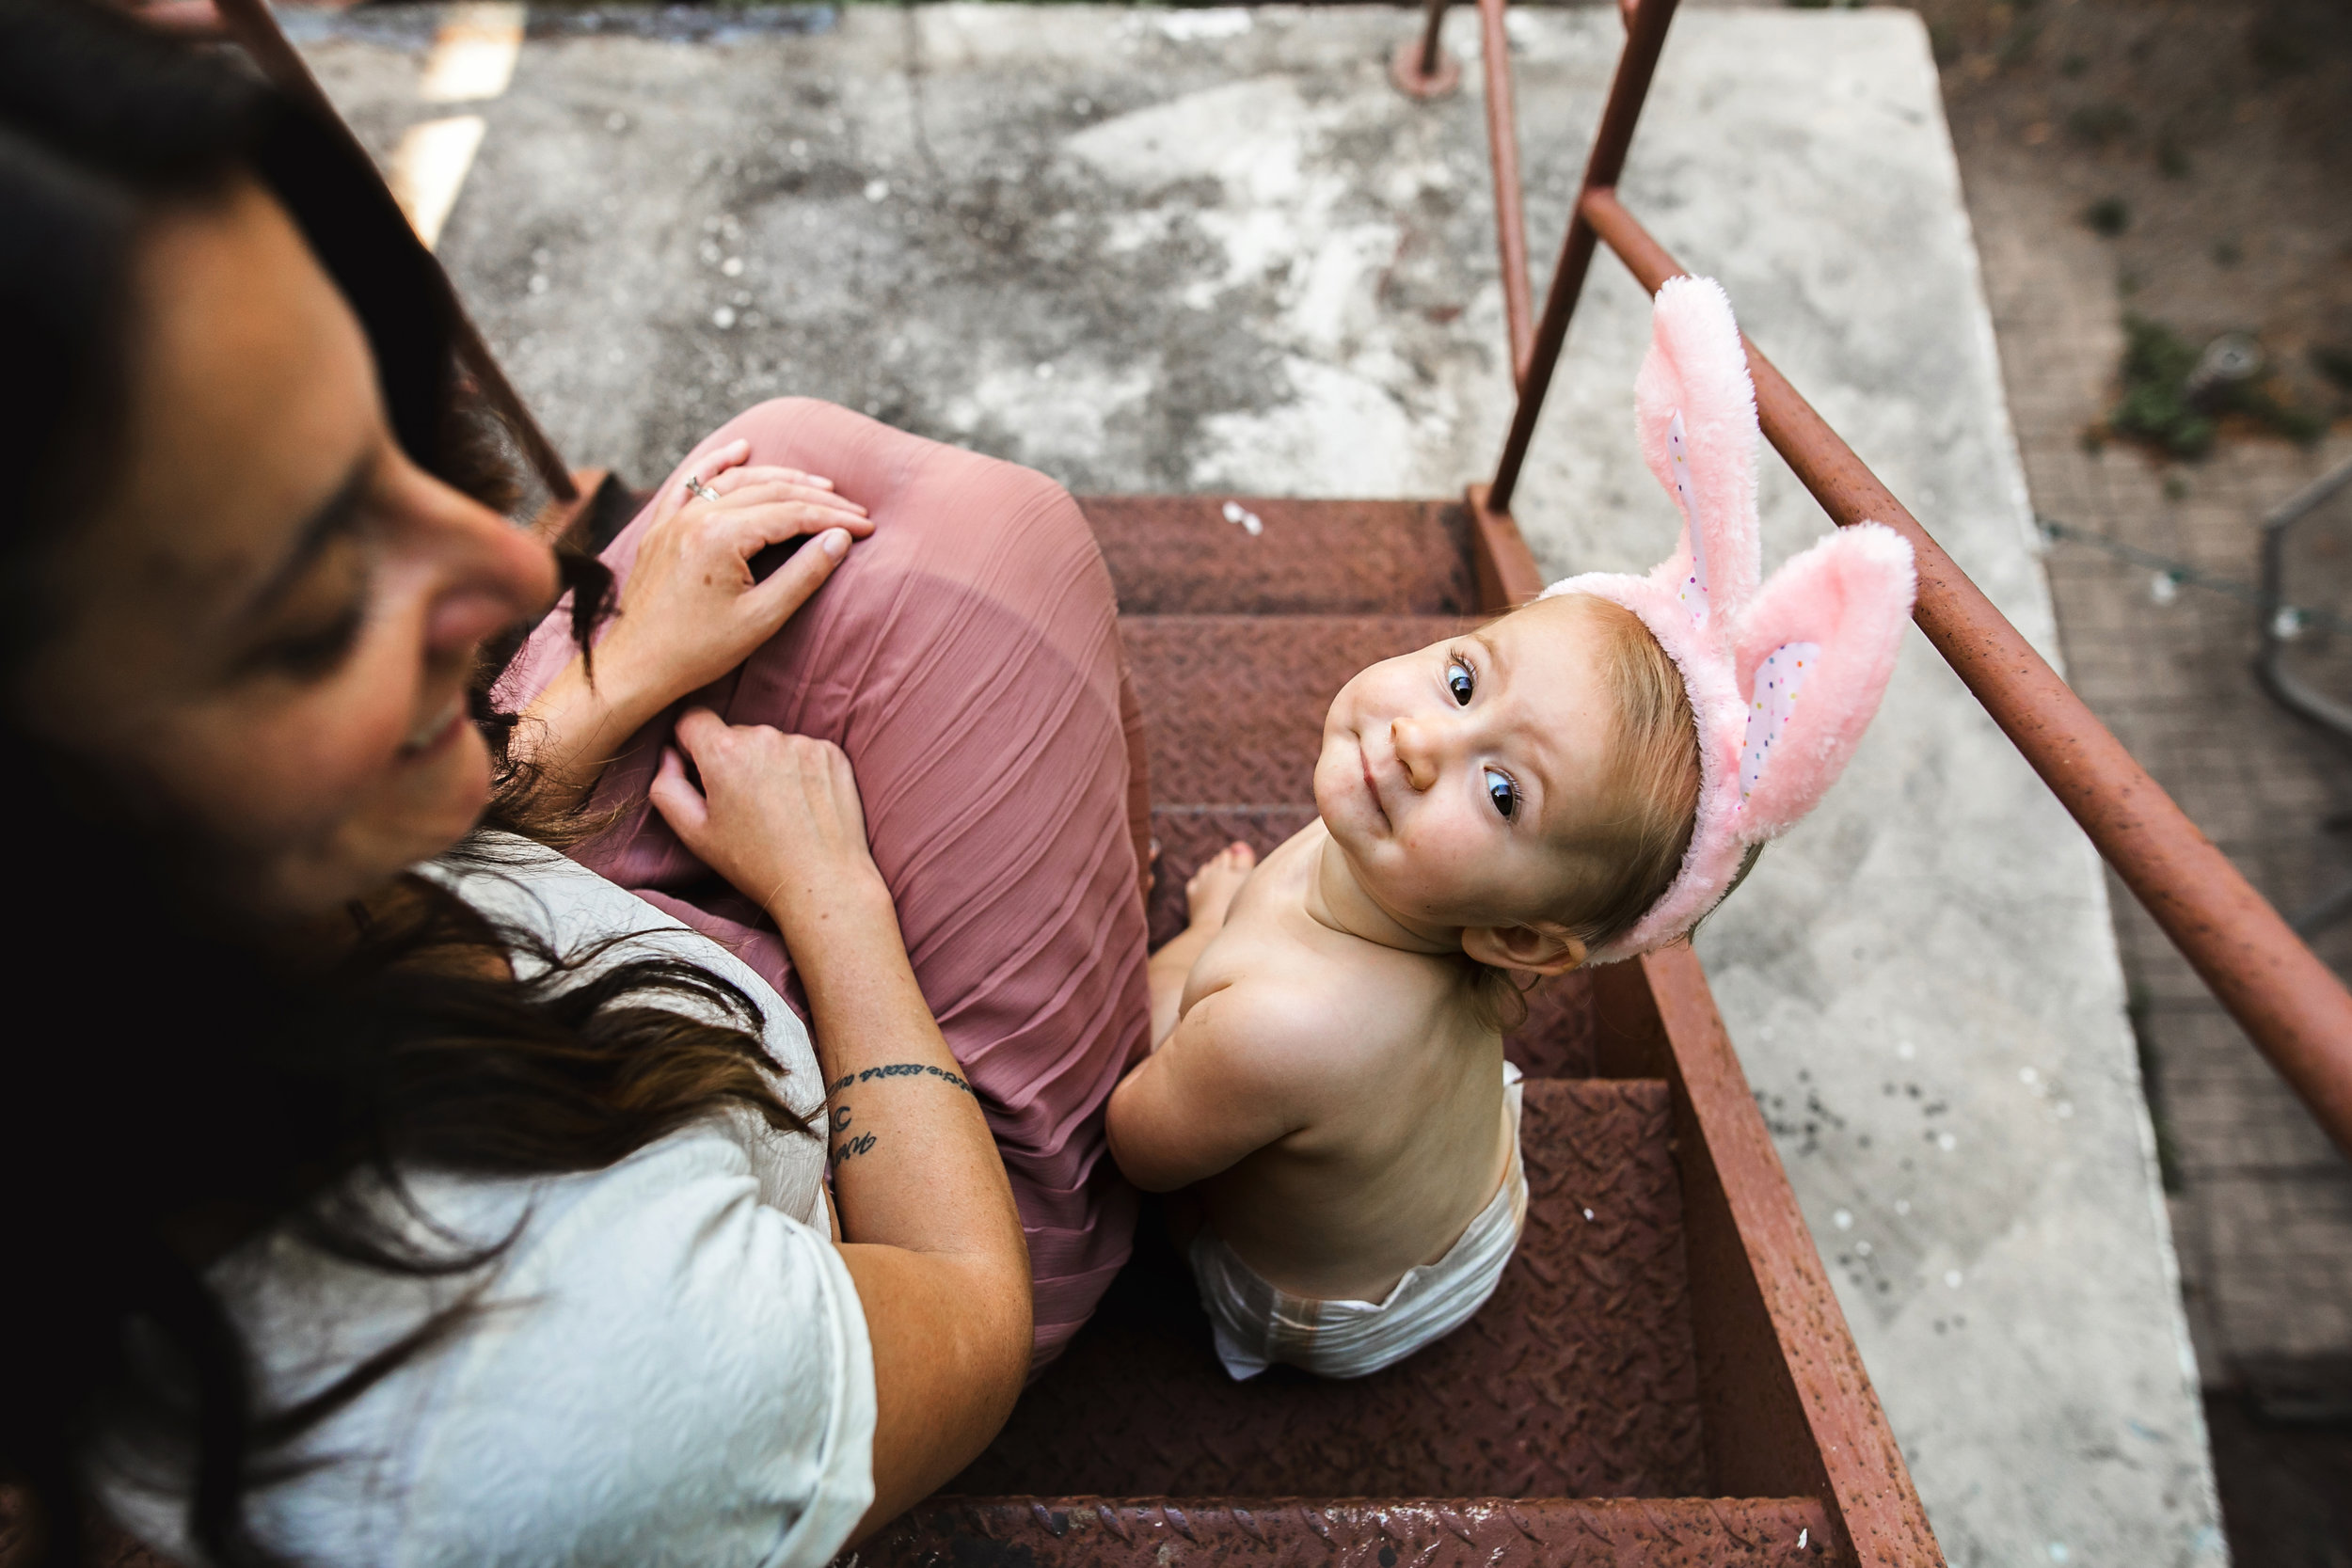 baby hangs on fire escape with mom wearing pink bunny ears 2-(ZF-0126-04493-1-016).jpg